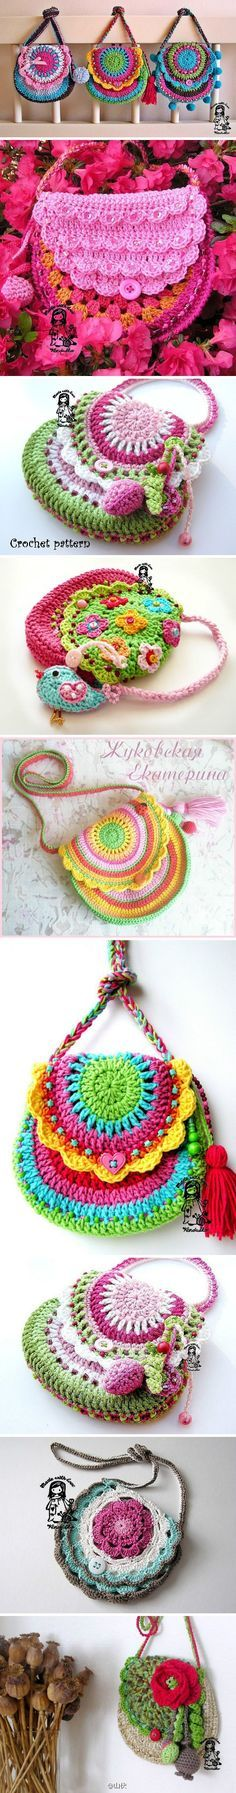 I would love to be able to crochet something like this someday! Imagine, making my own/my daughter her own trendy little hippie purse!